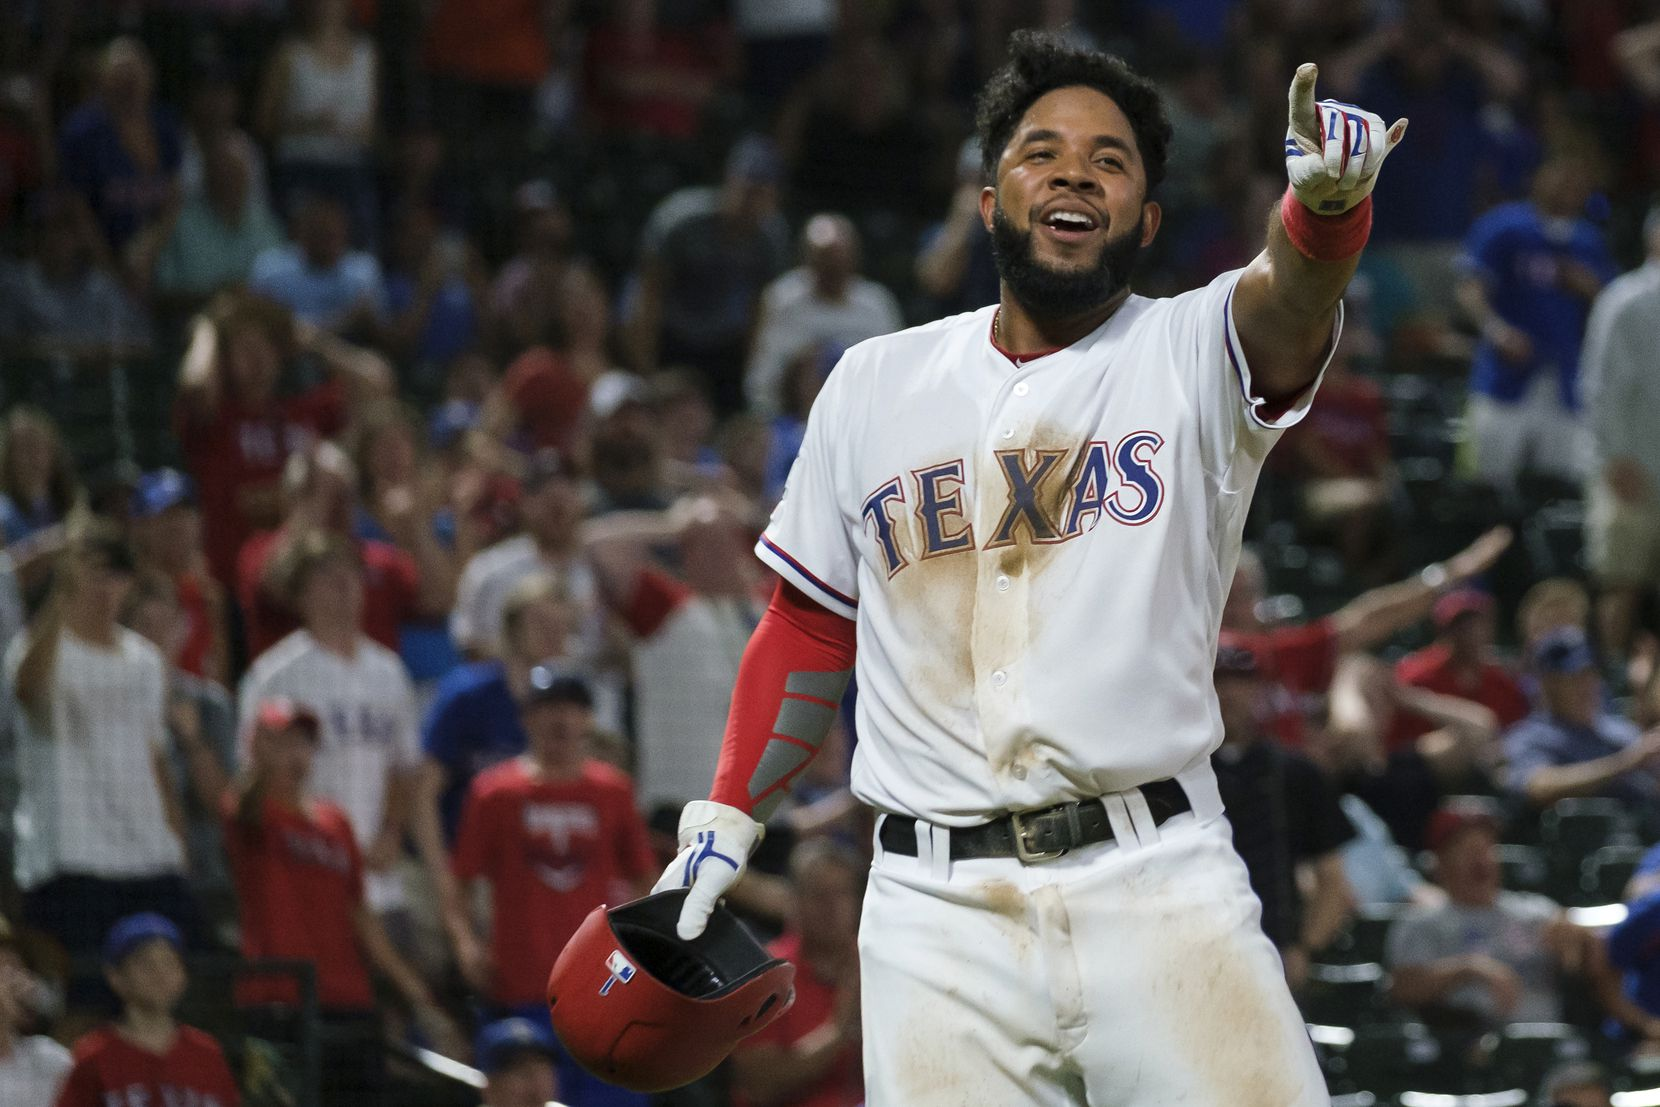 Shortstop Elvis Andrus is part of the lineup for a Texas Rangers meet-and-greet Jan. 18 at Dr Pepper Ballpark in Frisco.